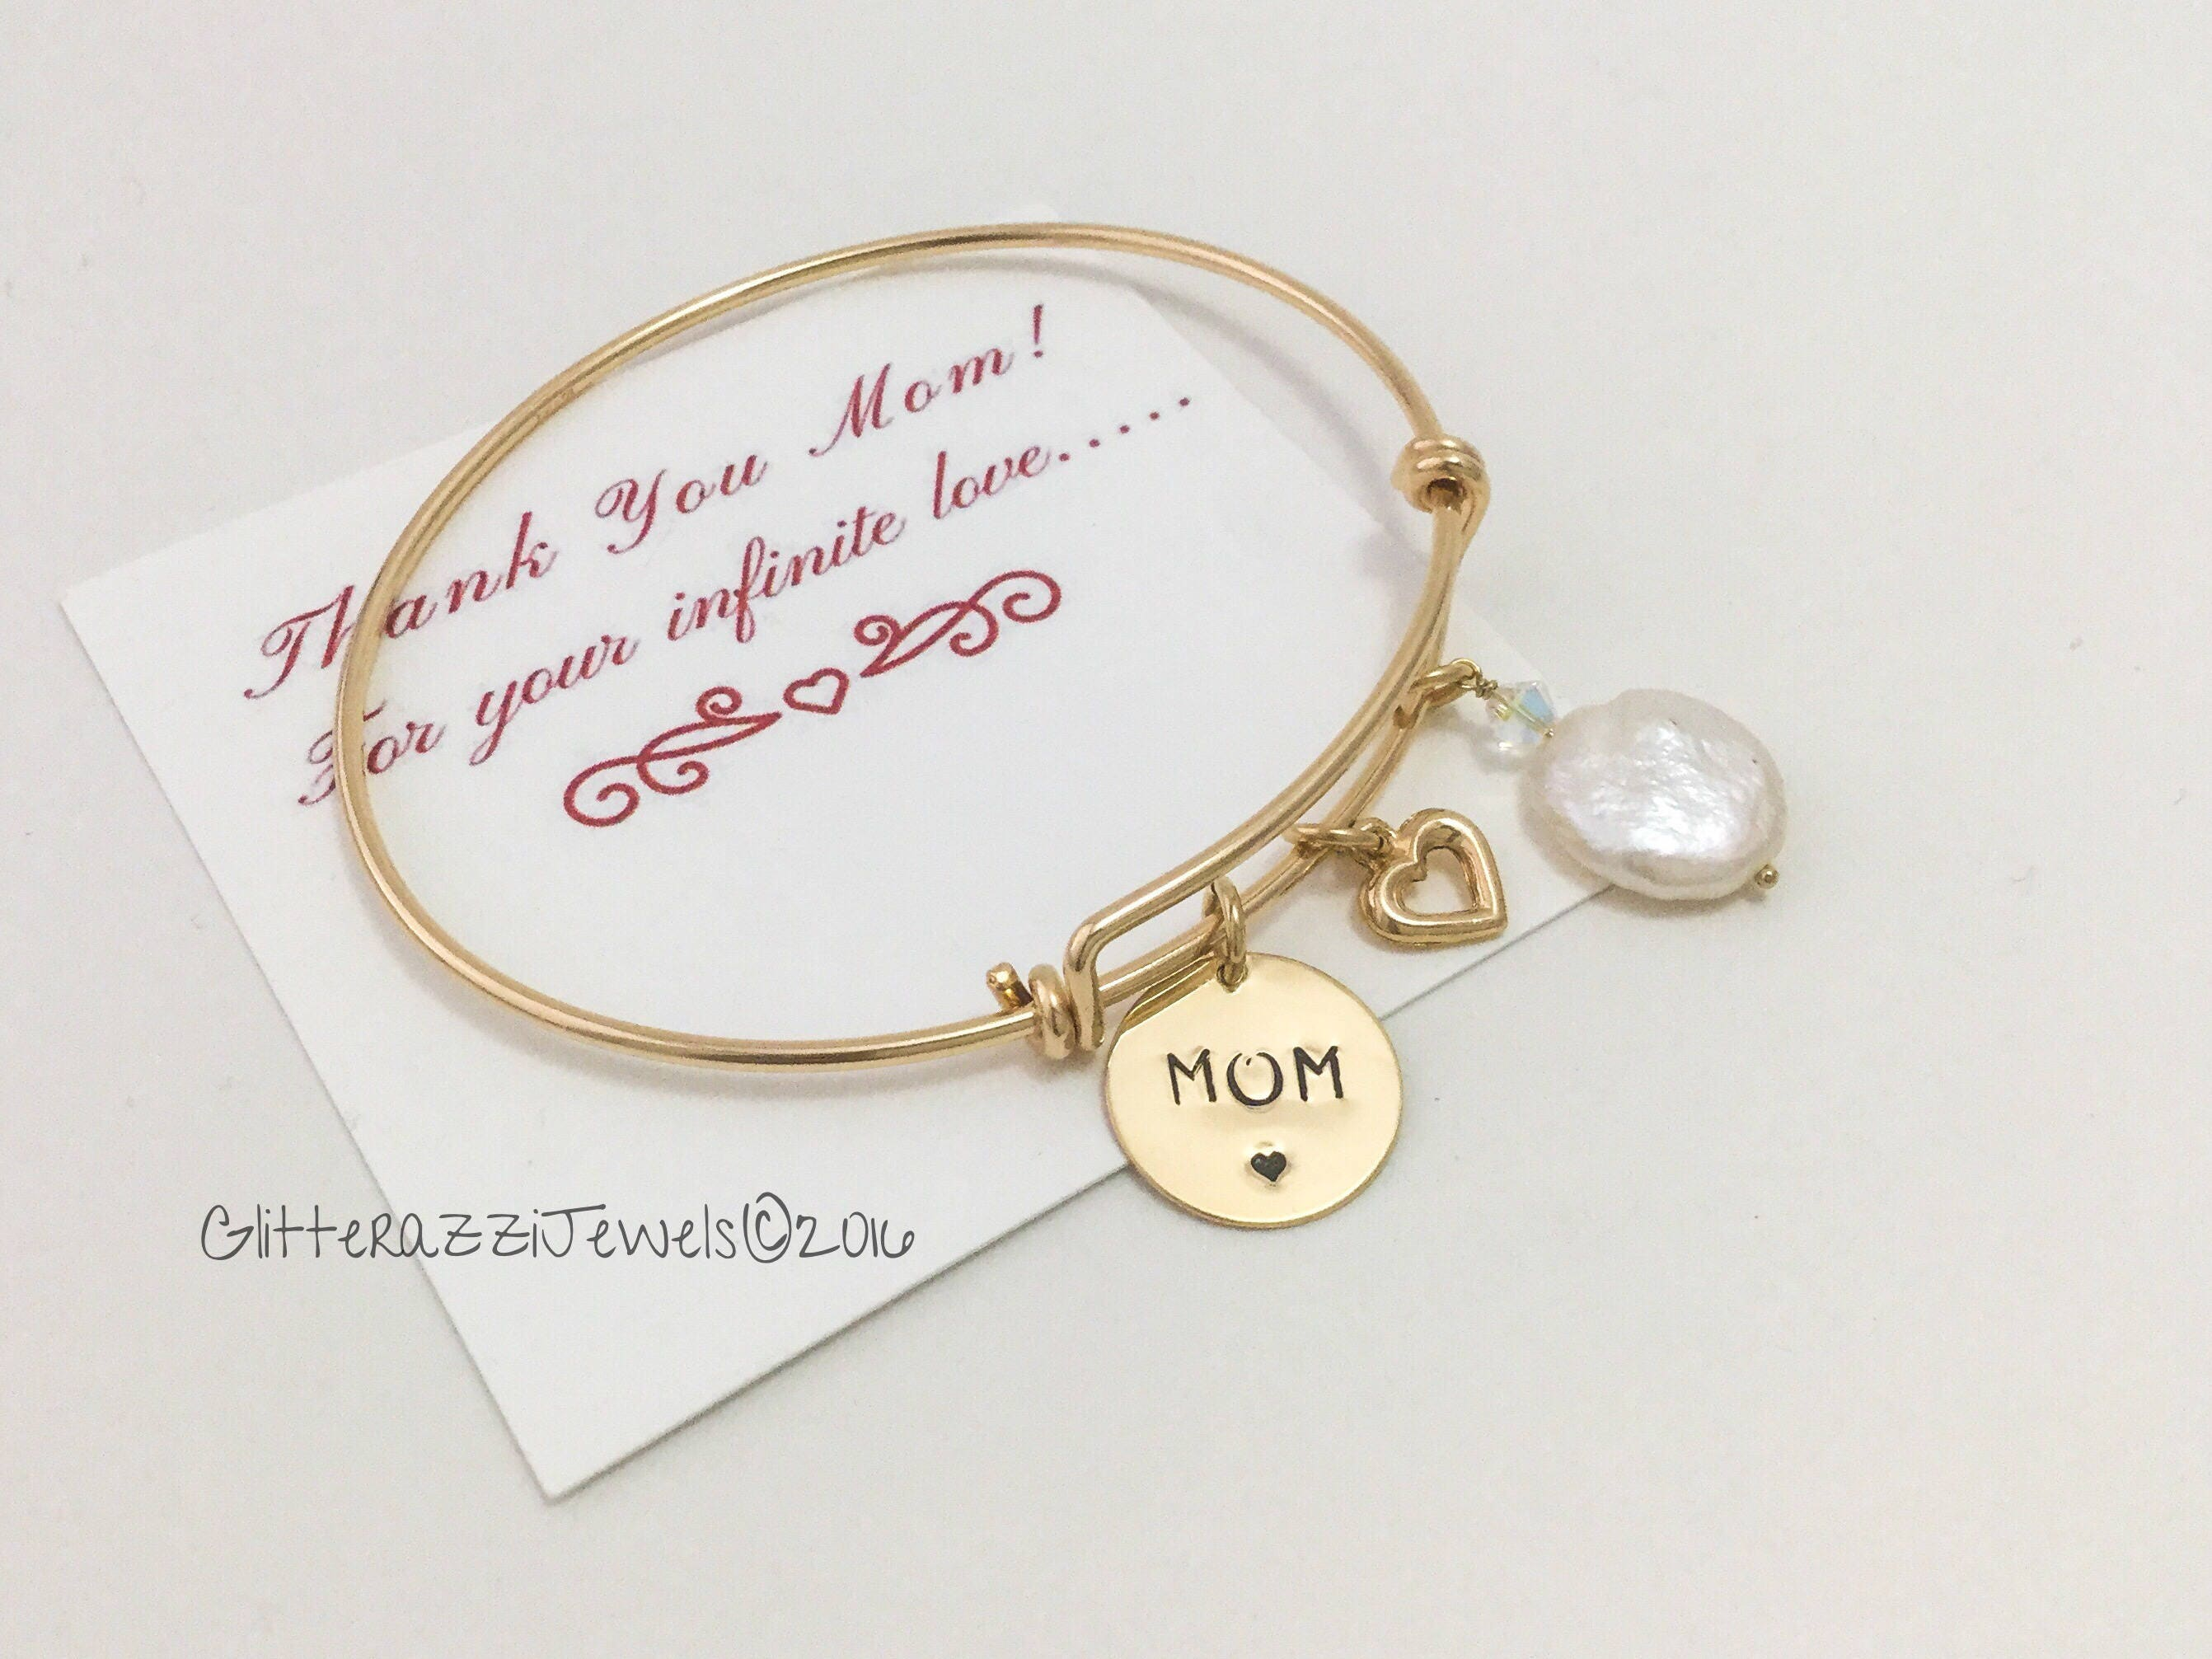 gb of bangle london rose bracelet hires vermeil charm gold en capture bracelets bangles links